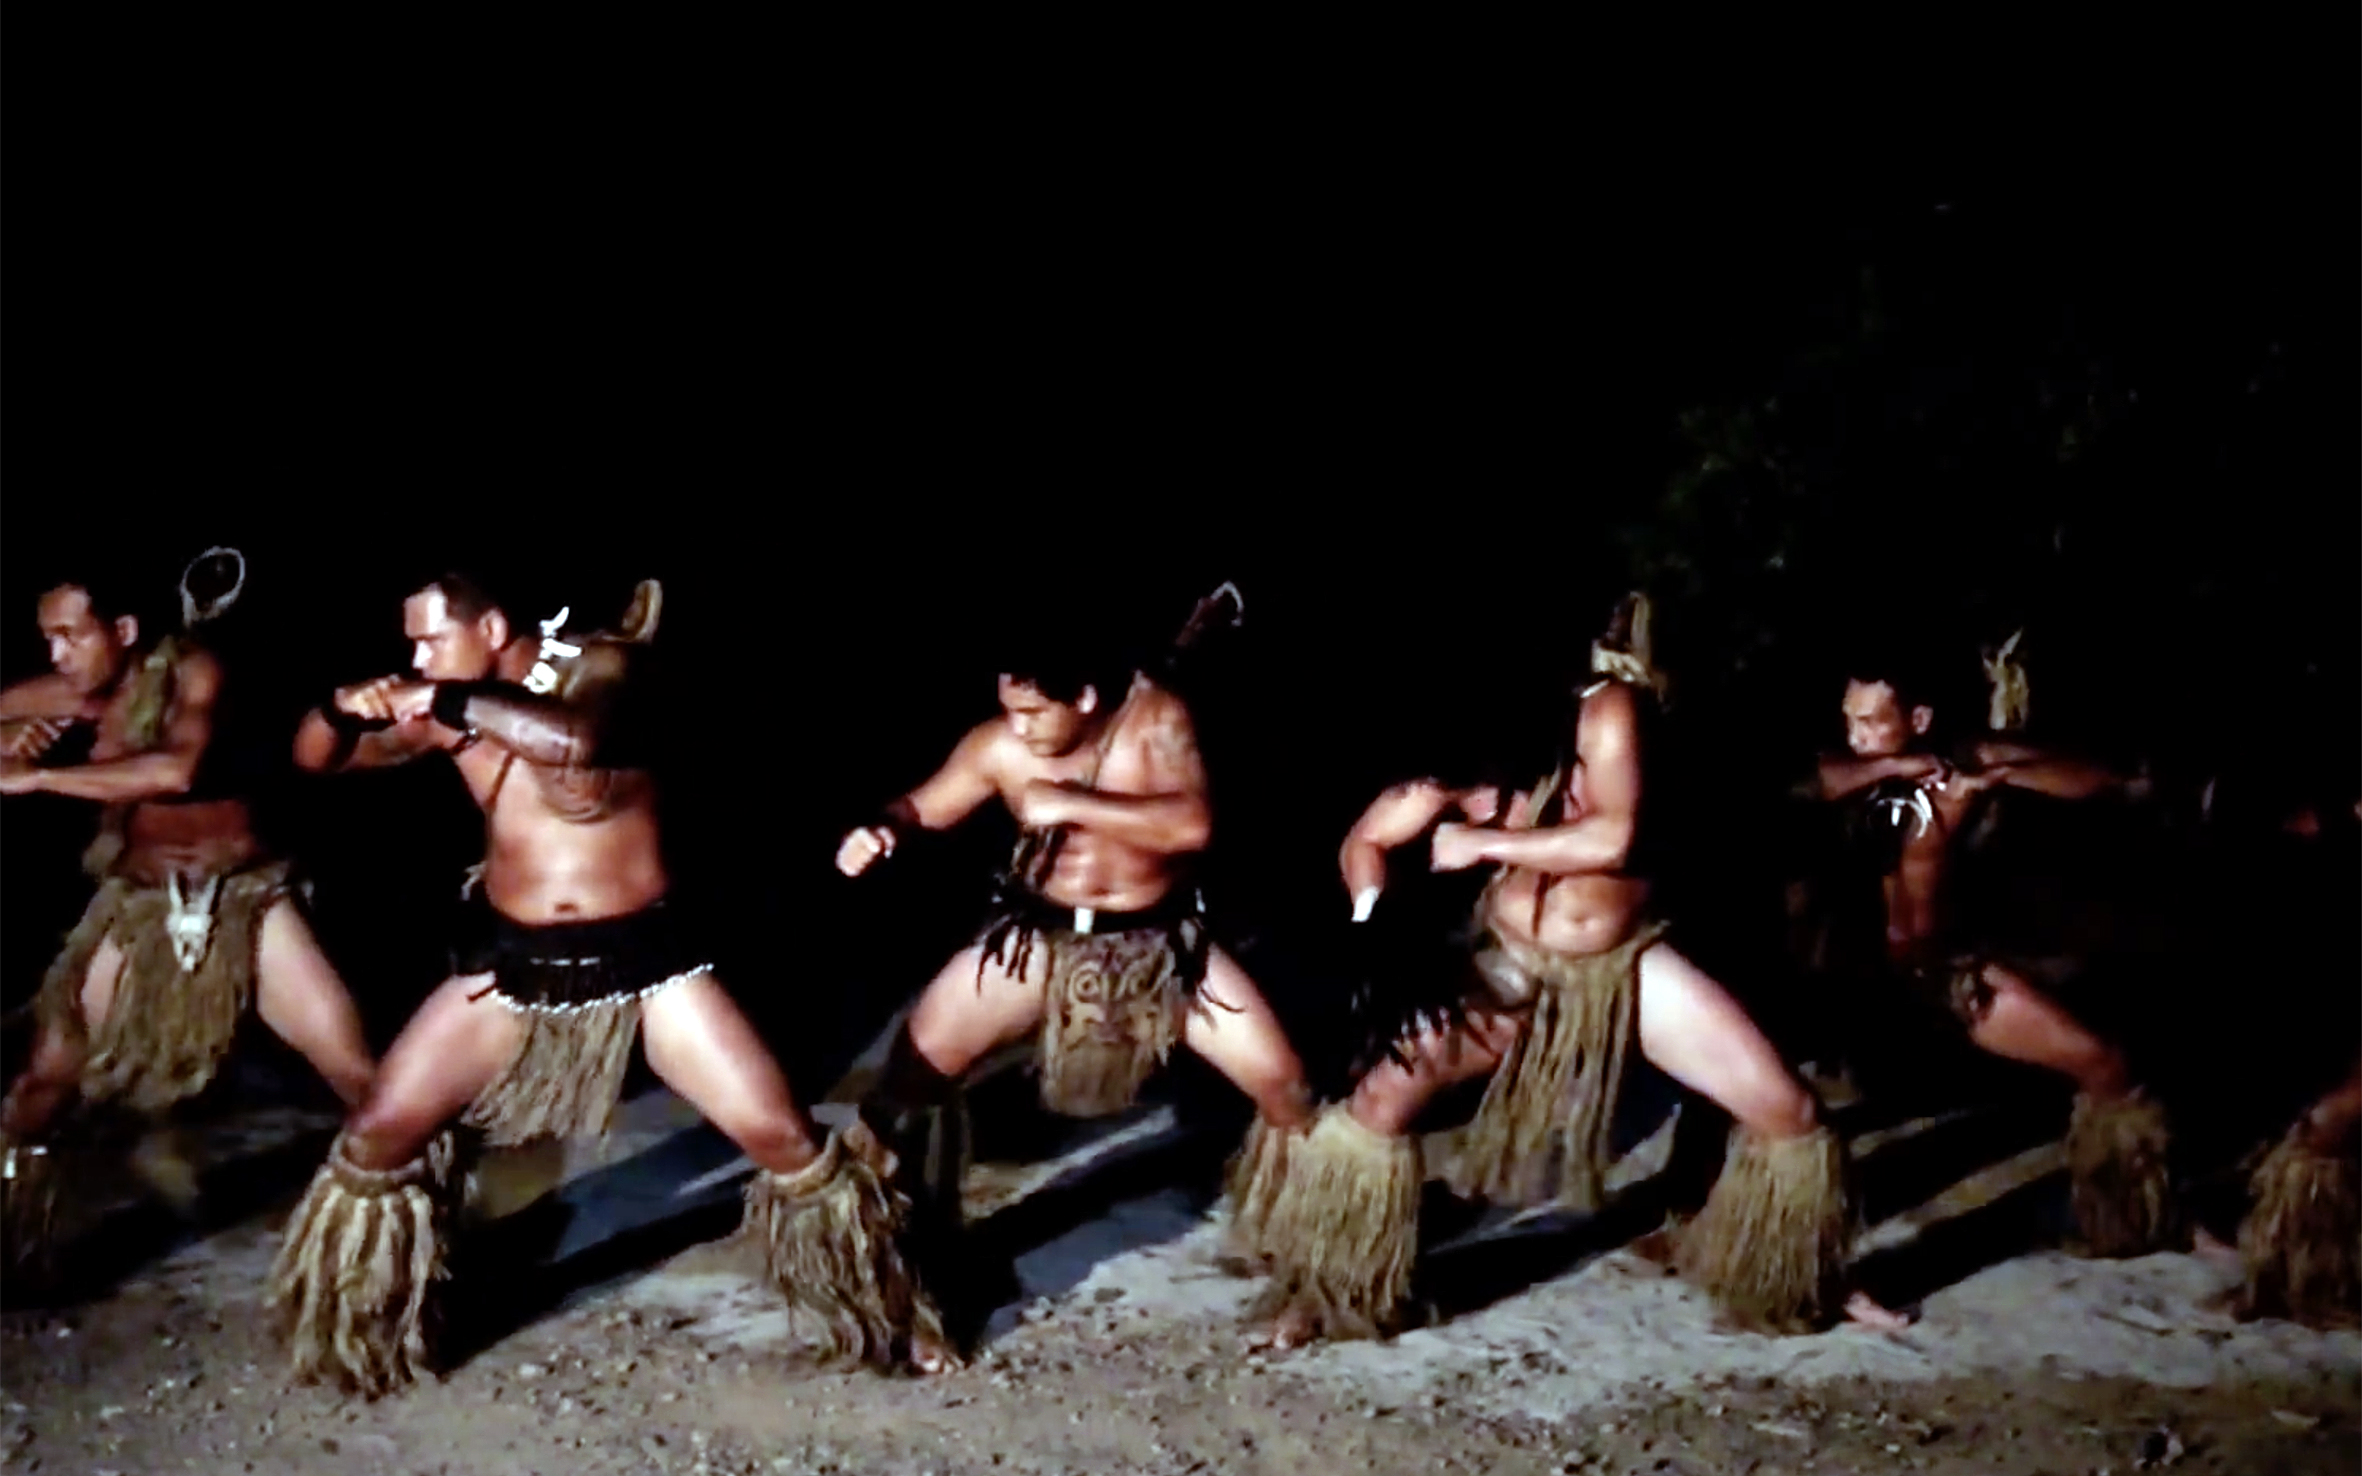 361.HAKA MANU & MAHA'U / French Polynesia - HAKA MANU & MAHA'U is a traditional dance from French Polynesia. It means Bird Dance. There are also different dances based on Haka such as Danse du Cochon, which means Pig Dance, the warrior dances. Polynesian civilisation is based on verbal language allowing them to tell stories, call the spirits, speak to their ancestors. It also materialised during dances.